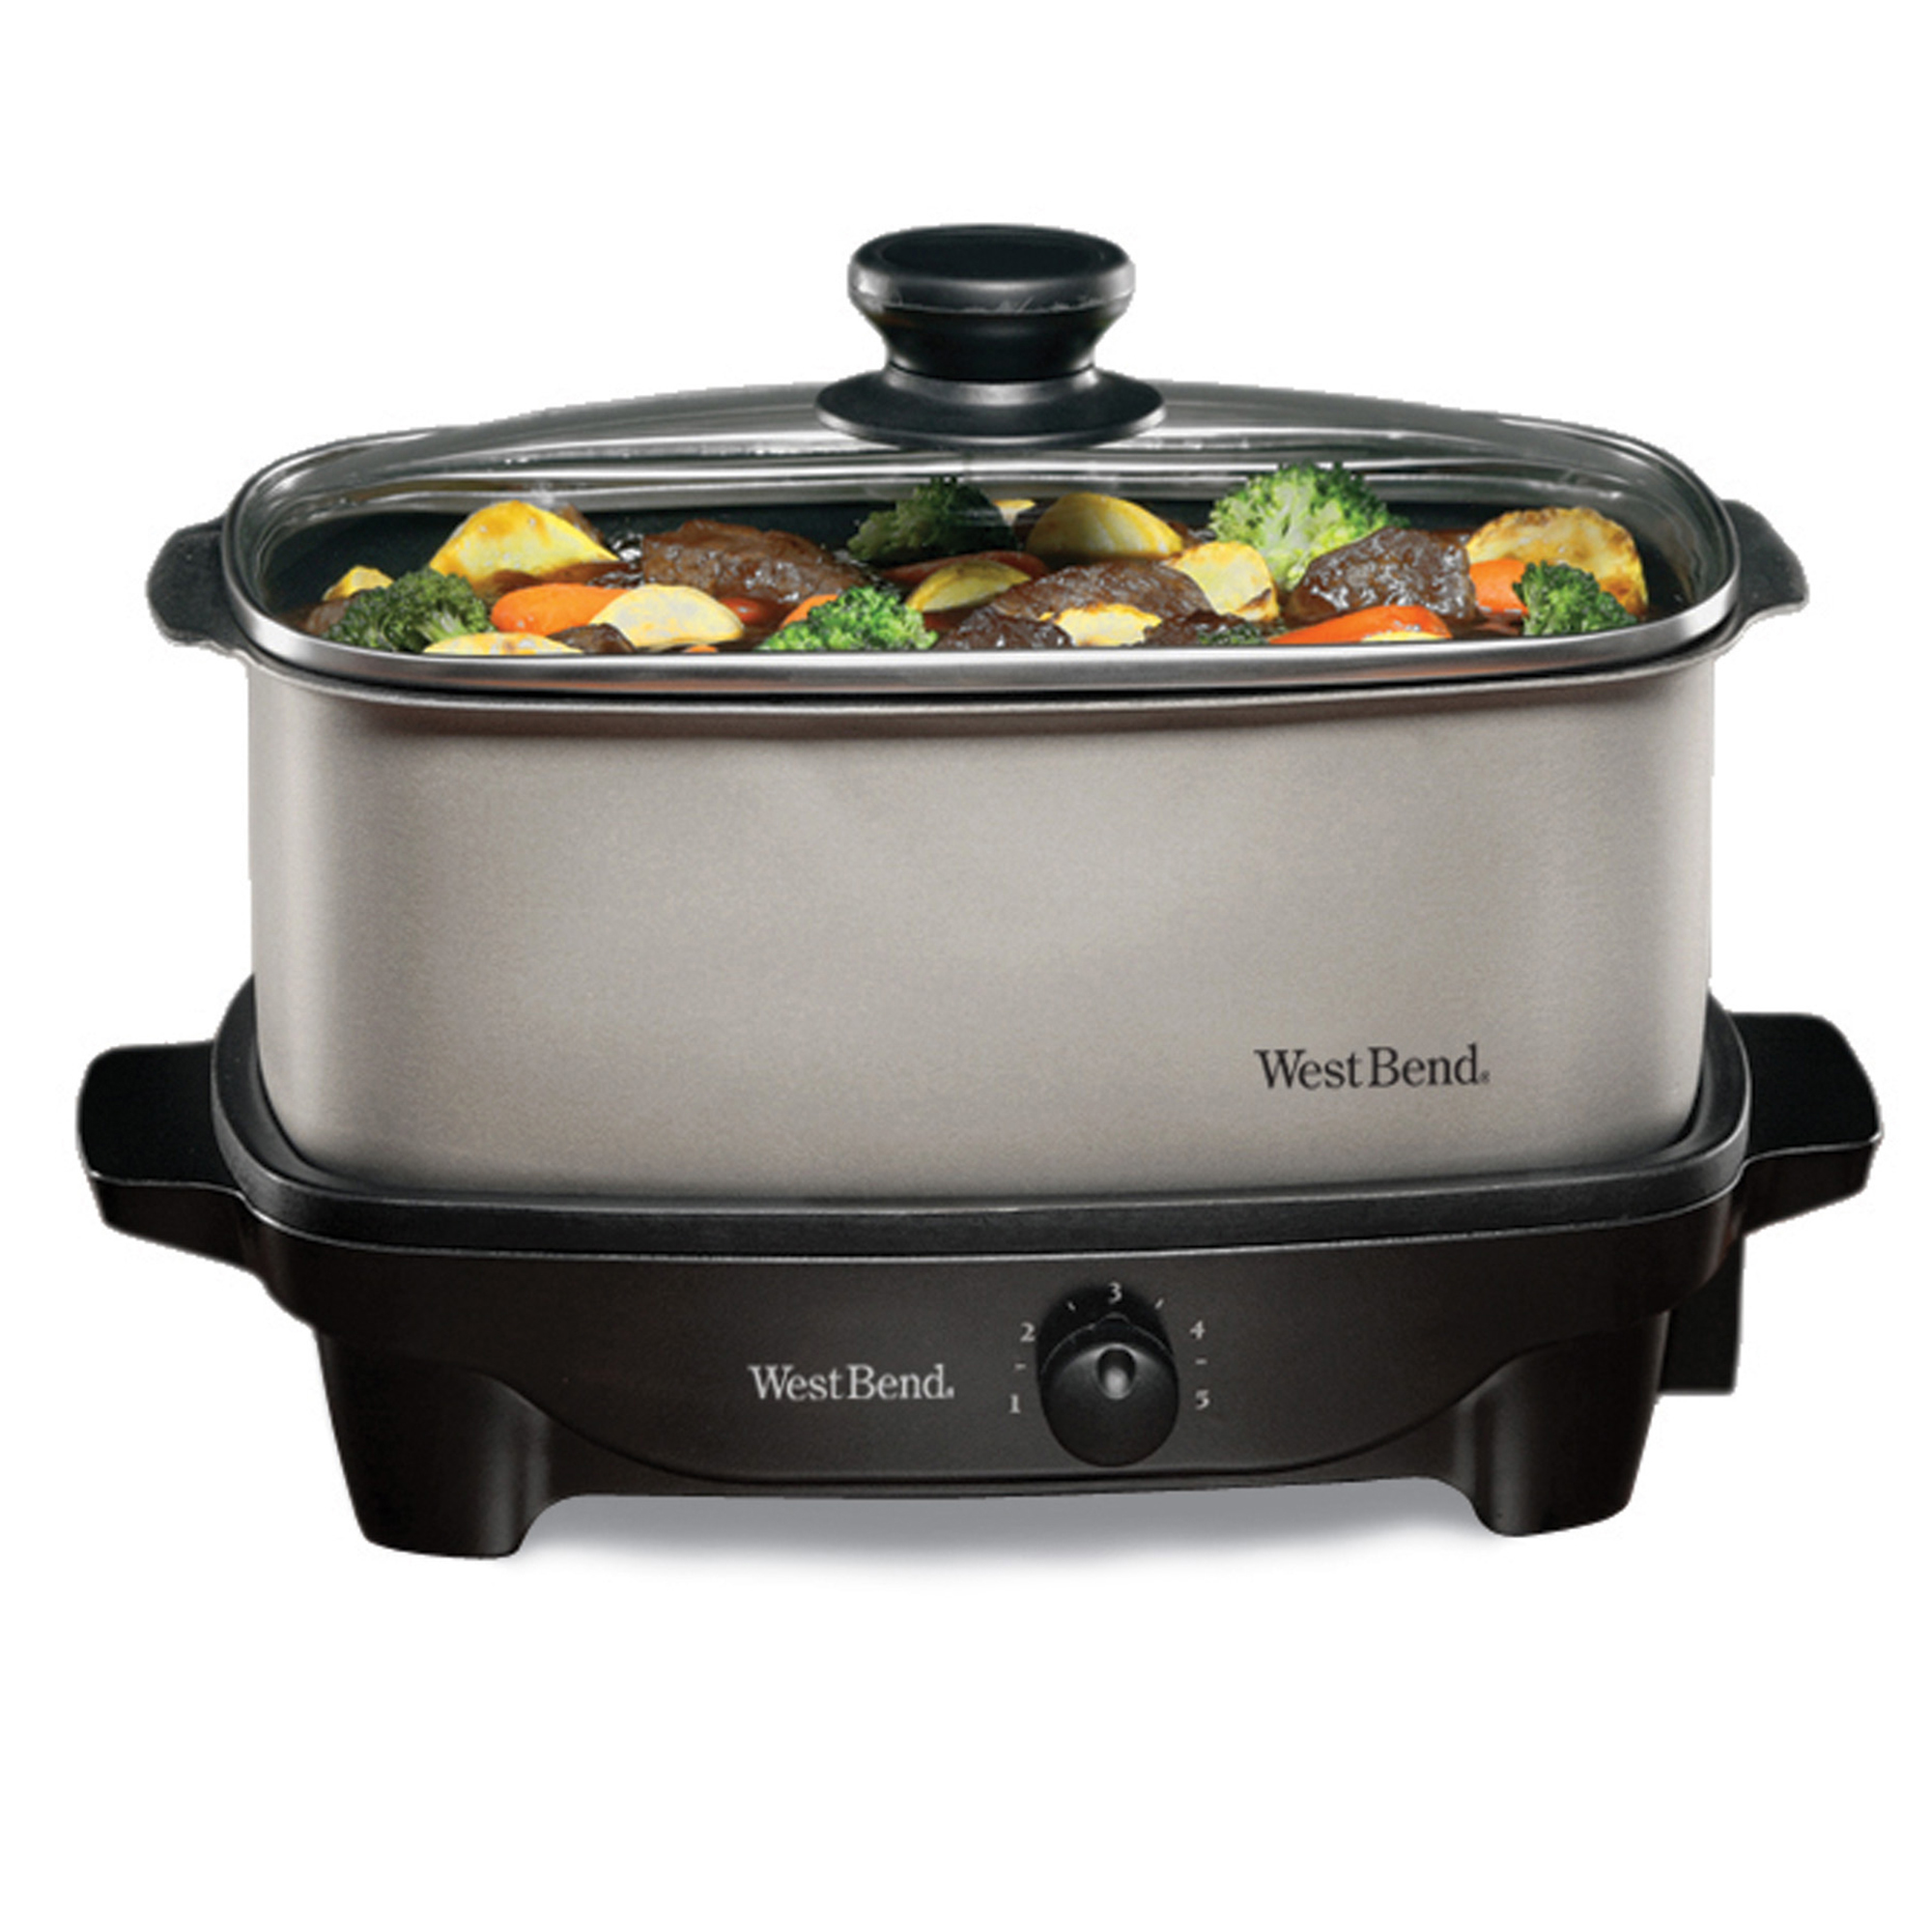 West Bend 84905 5-Quart Versatility Slow Cooker